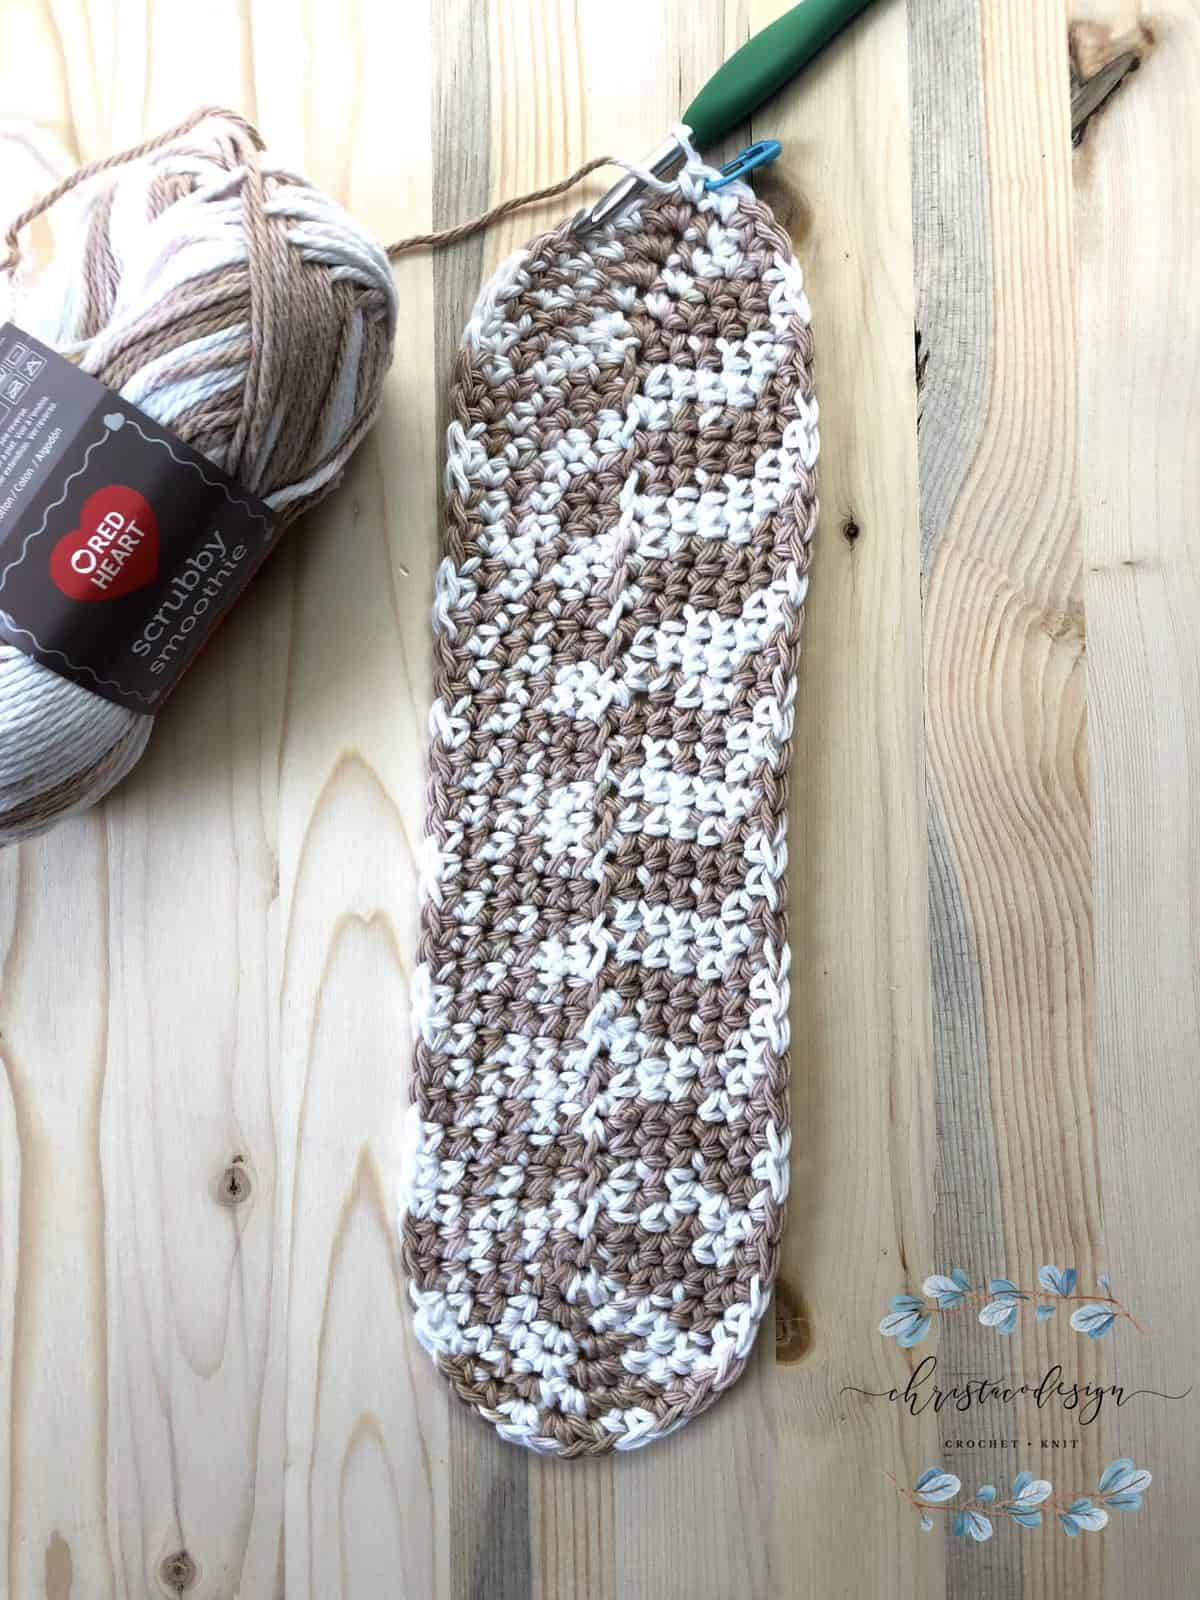 Bottom of free crochet tote bag pattern complete in variegated cotton smoothie yarn.